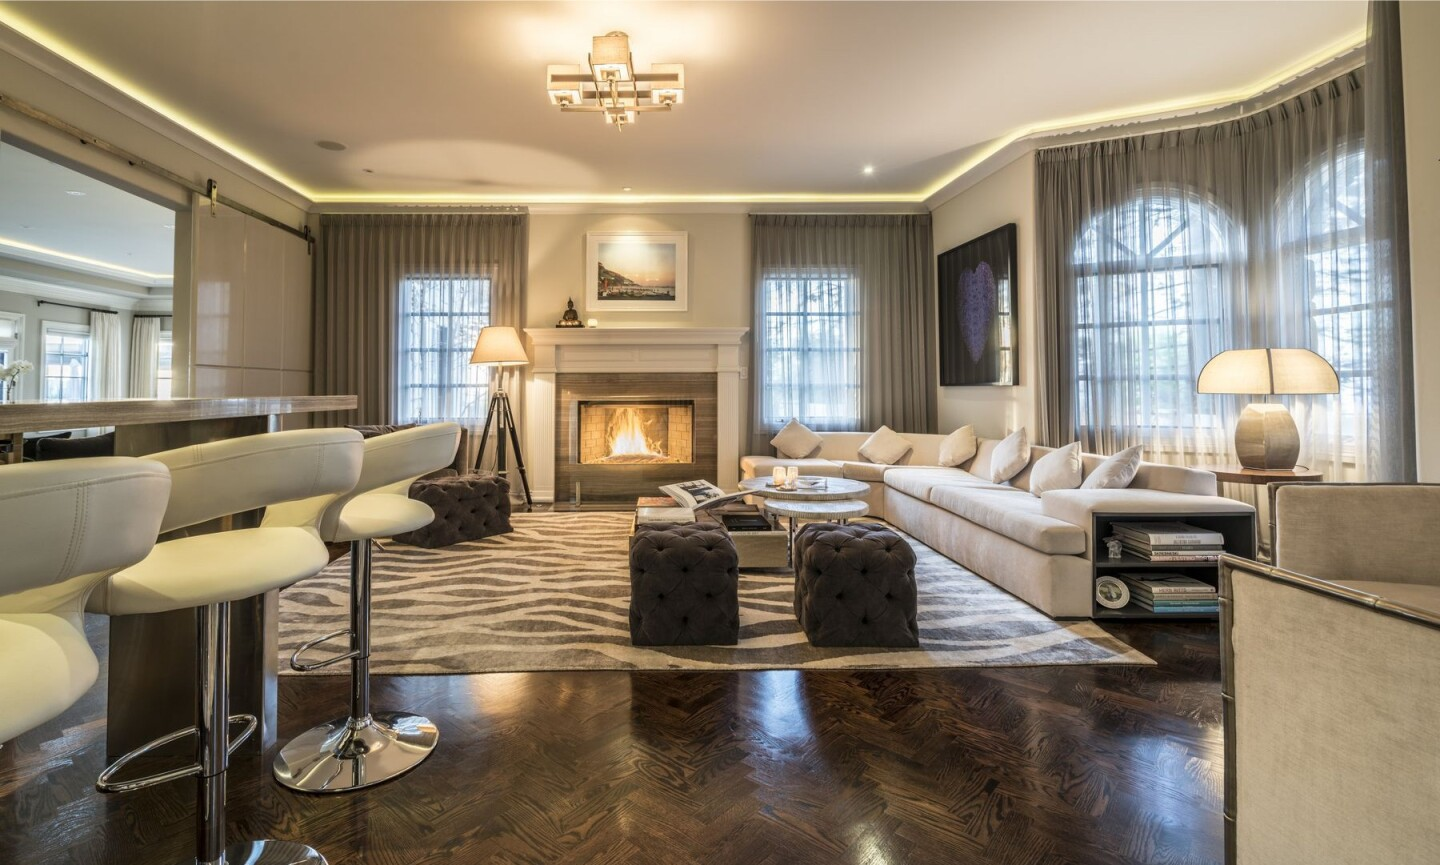 Kymberly Marciano's Beverly Hills home